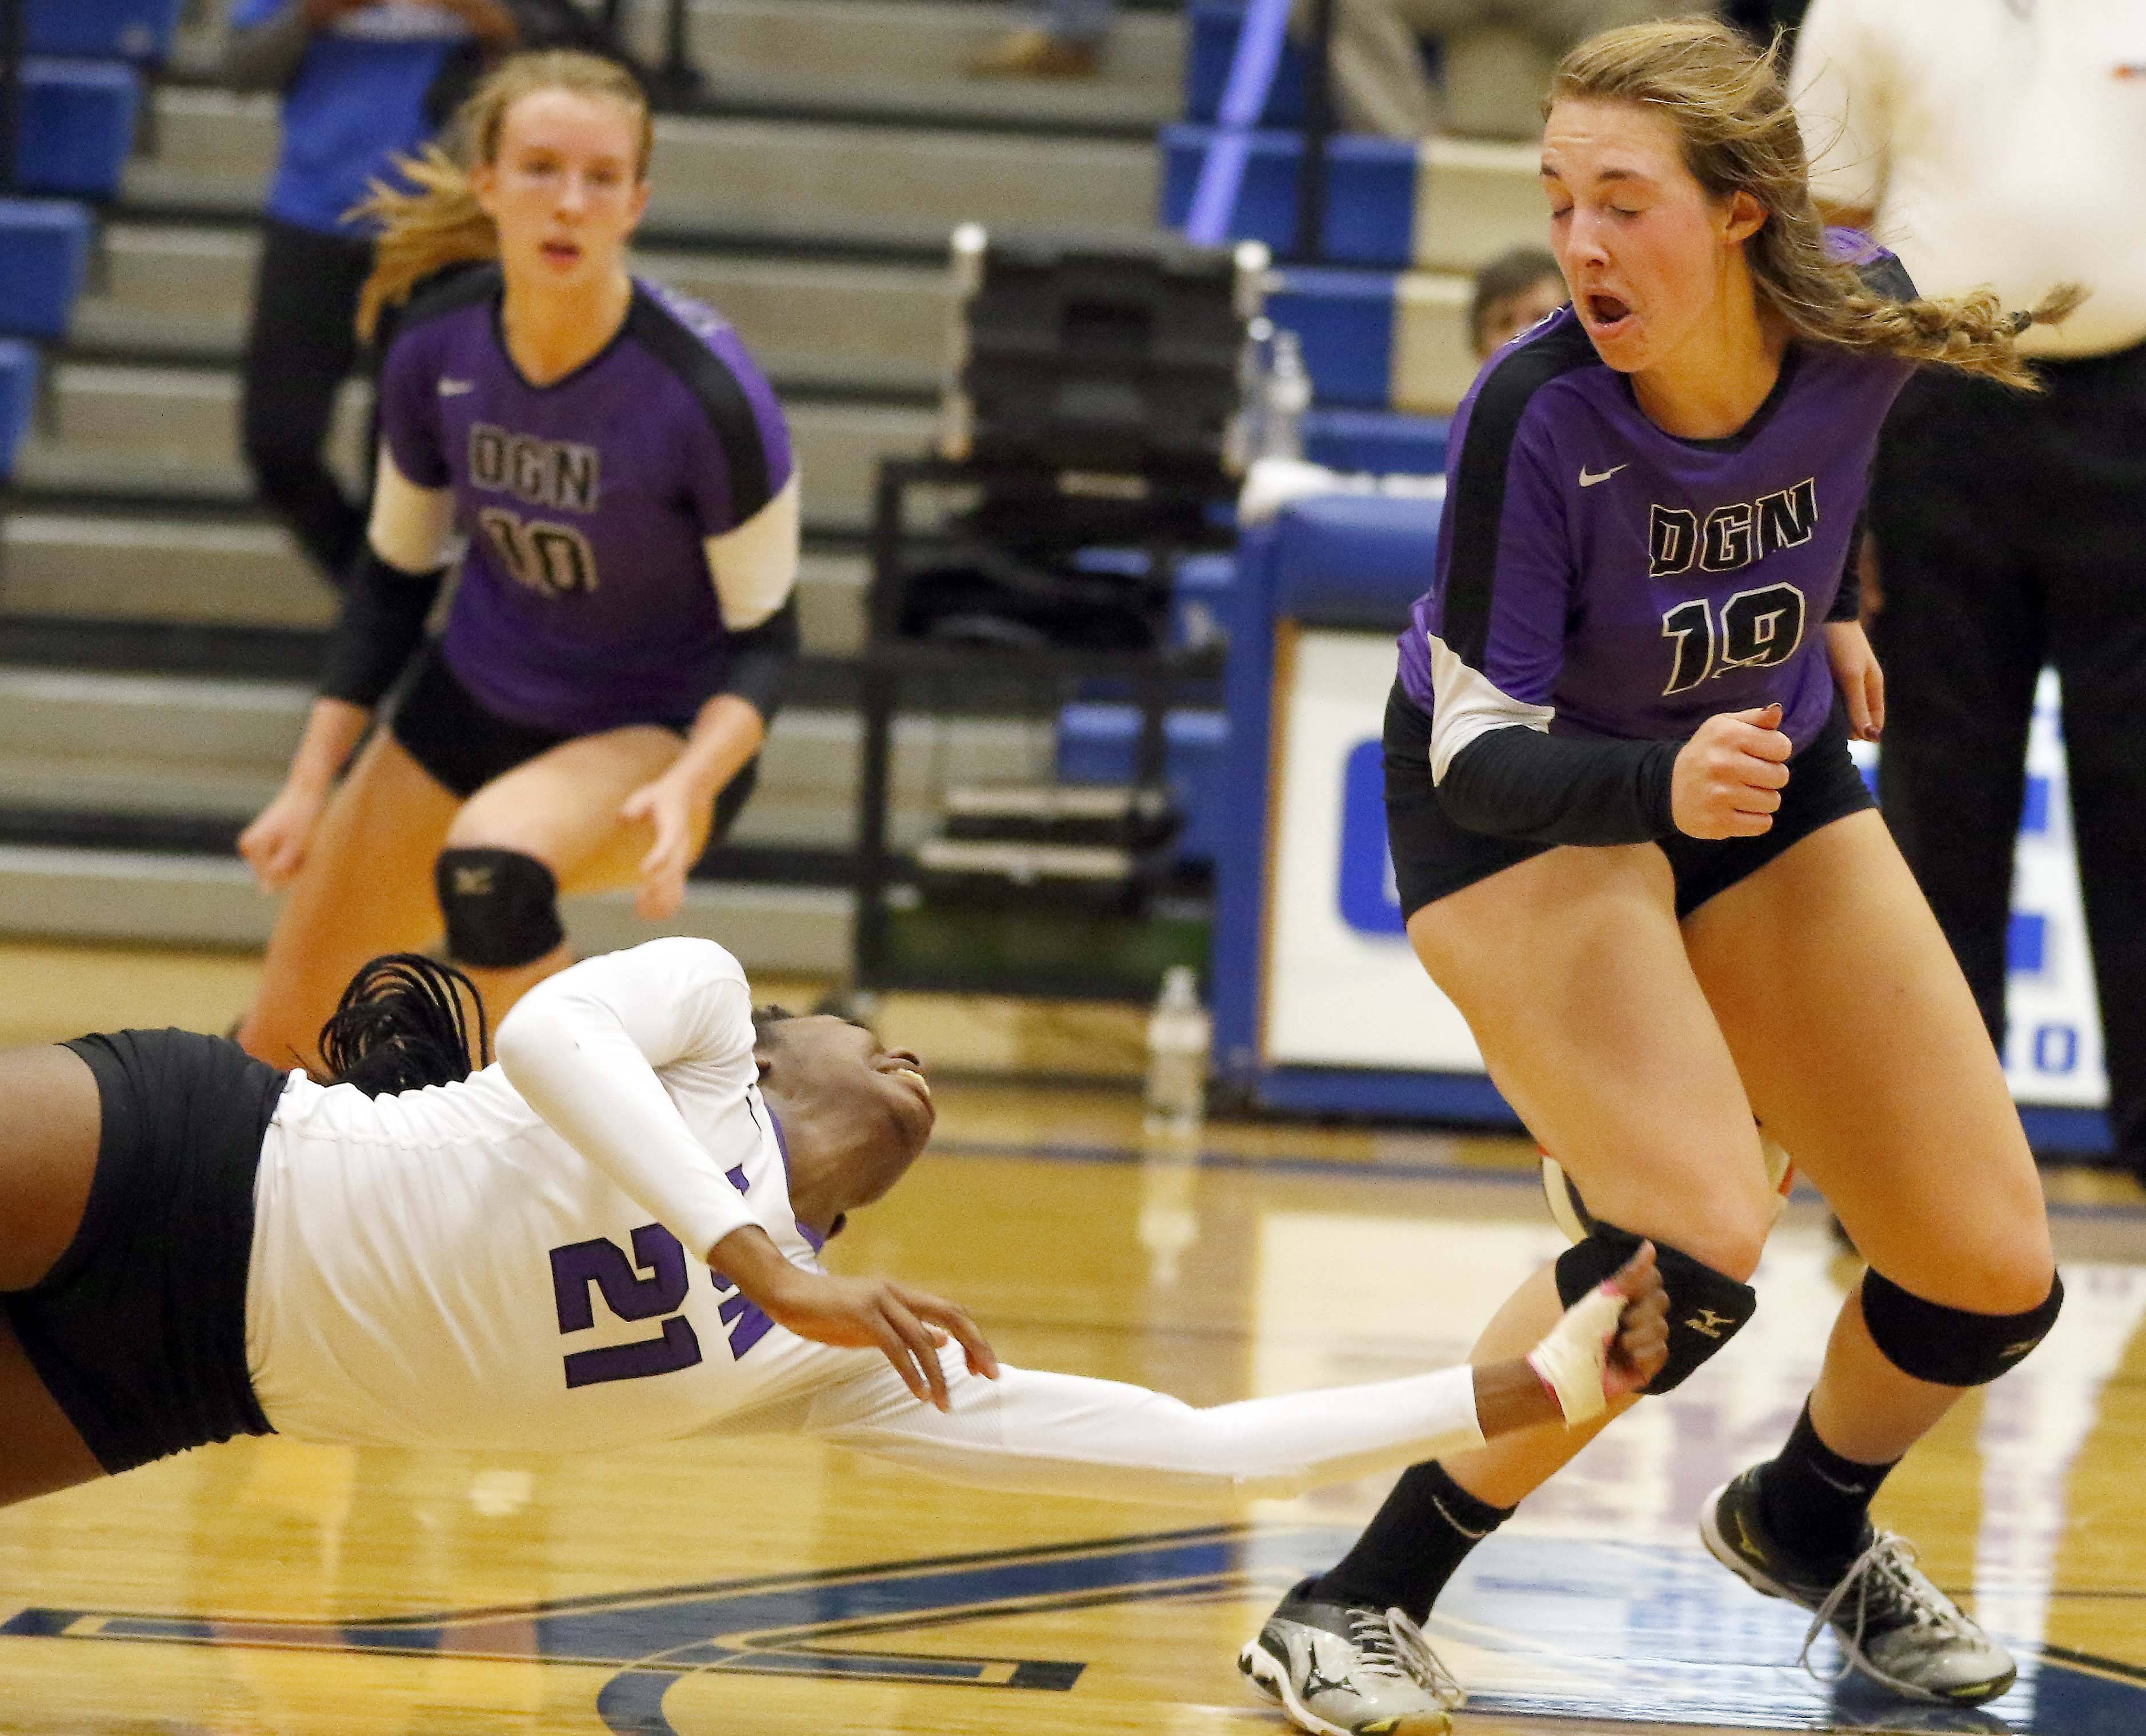 Downers Grove North's Kessie Olekanma (21) can't quite get the dig late in the match Friday in the Geneva volleyball supersectional.